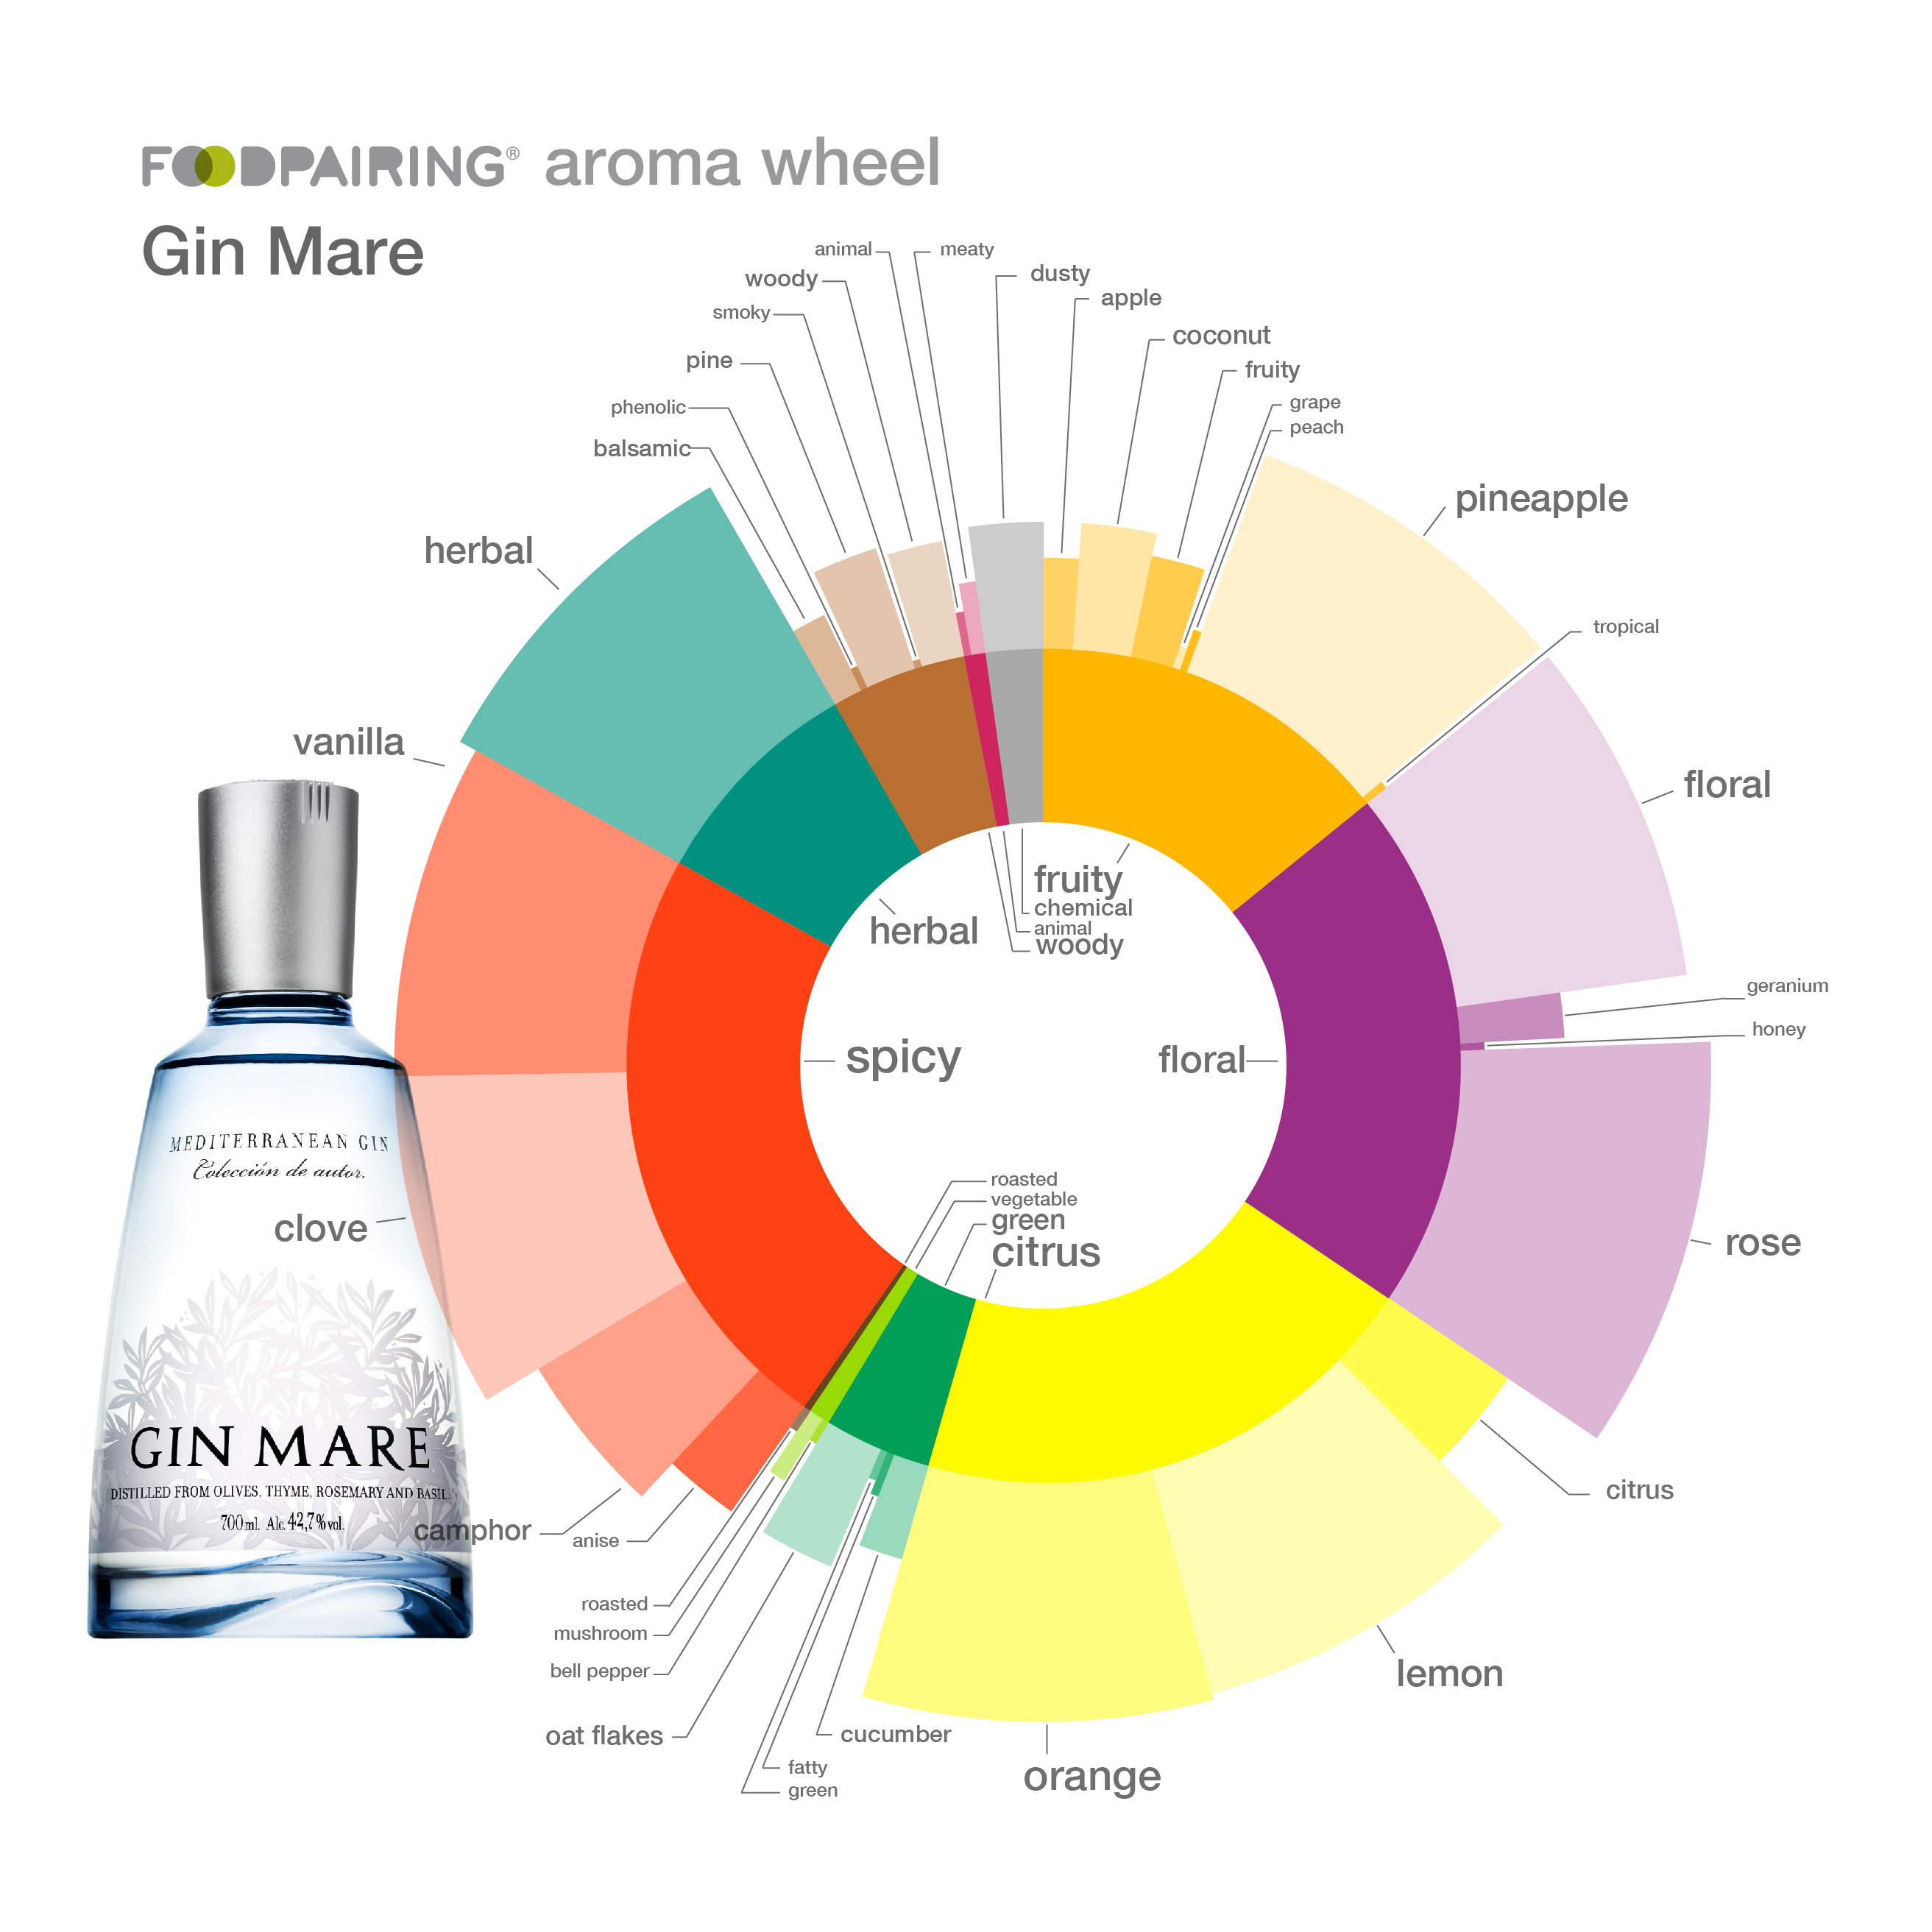 Aromatic Analysis: Gin Mare